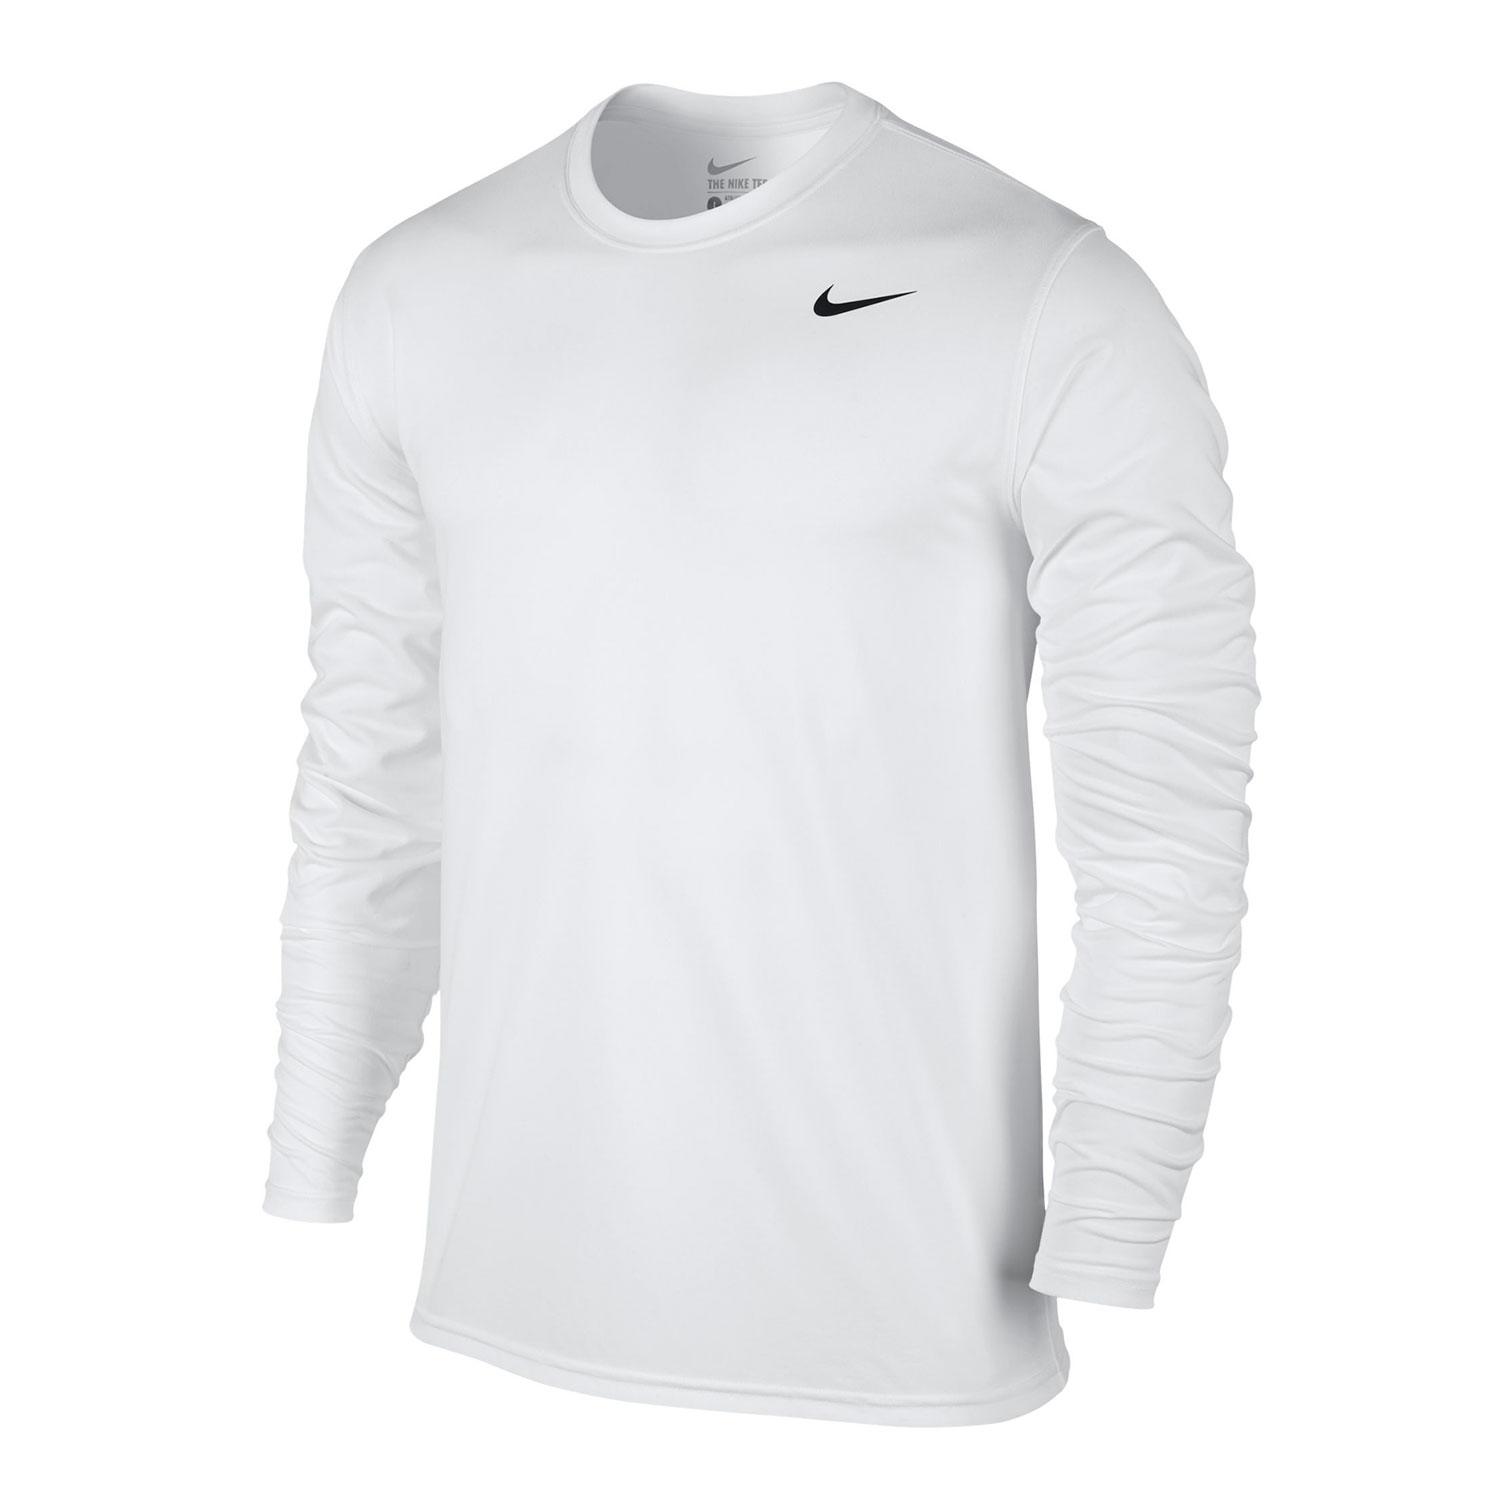 Nike Men's Legend 2.0 Long Sleeve T-Shirt